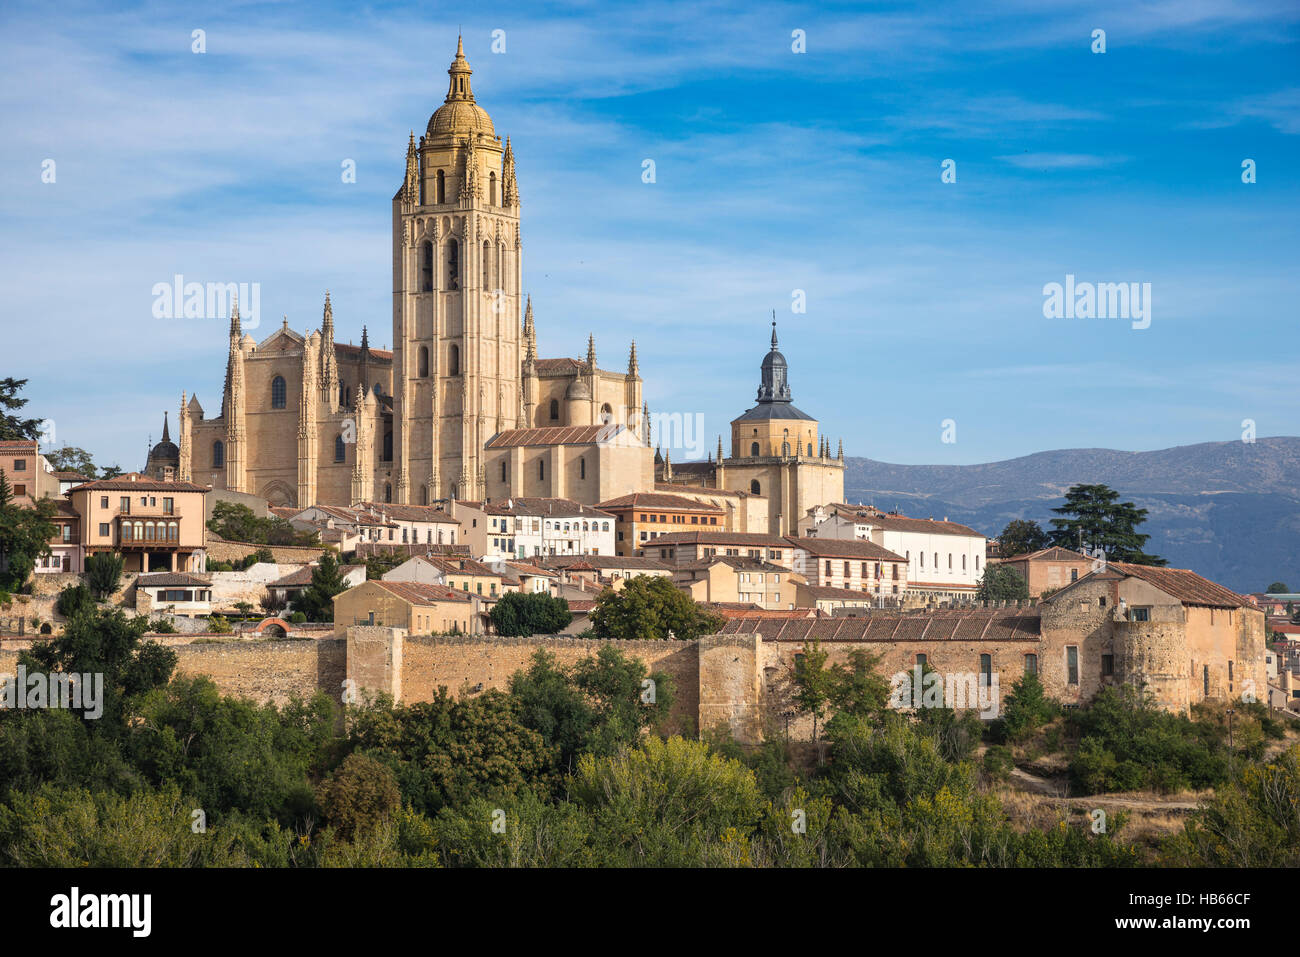 The city of Segovia and its late Gpthic Cathedral, Central Spain - Stock Image